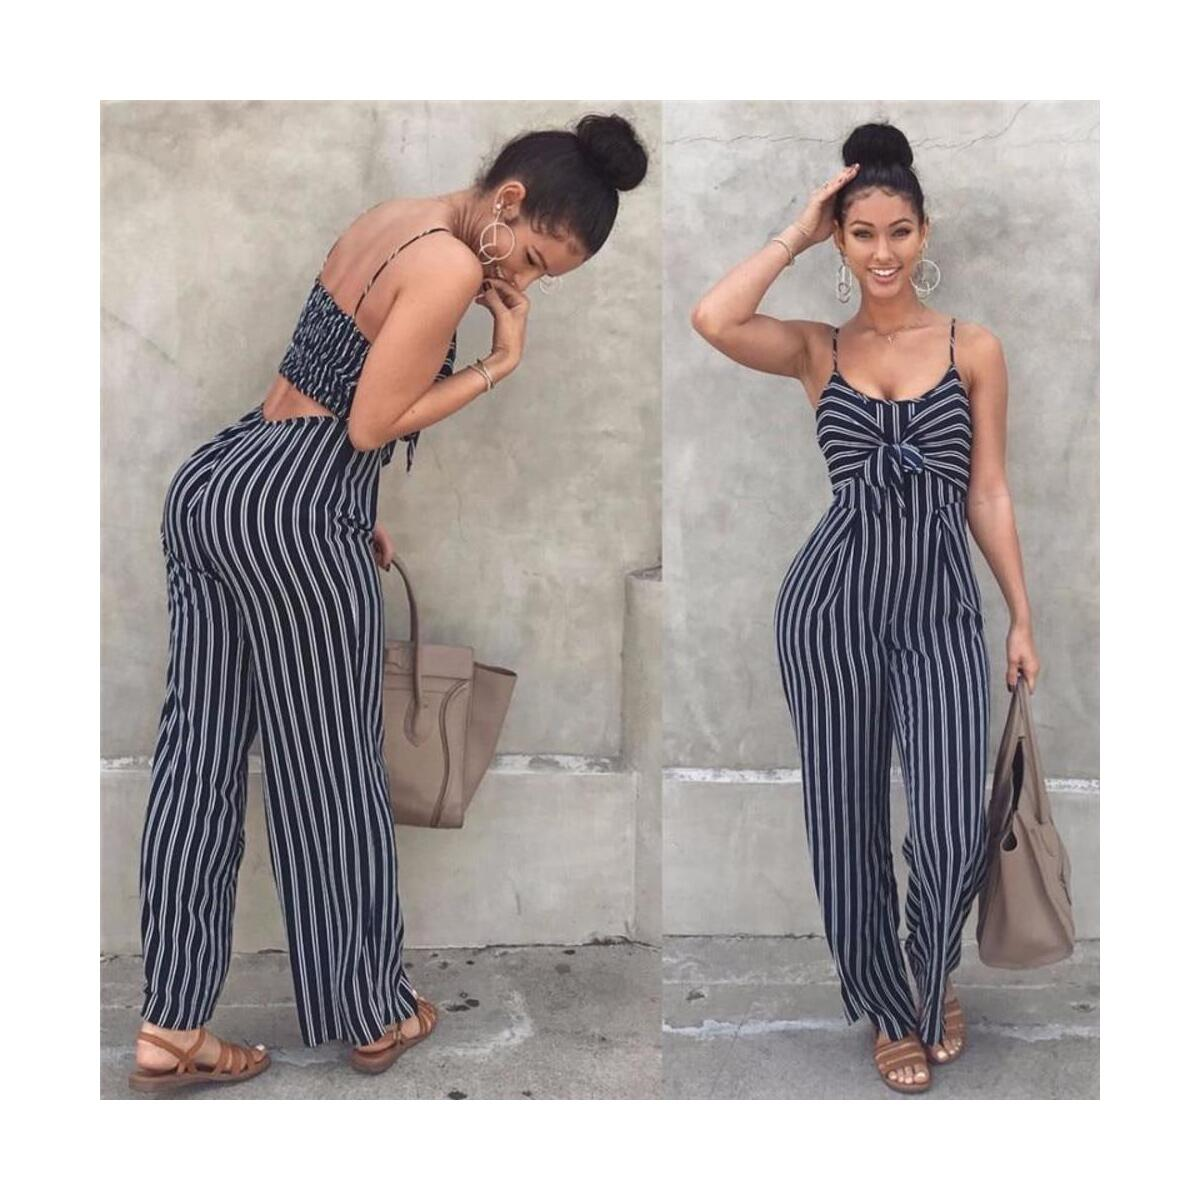 Spaghetti Strap Sleeveless Wide Leg Long Pants Cut Out Back Striped Casual Jumpsuit Romper